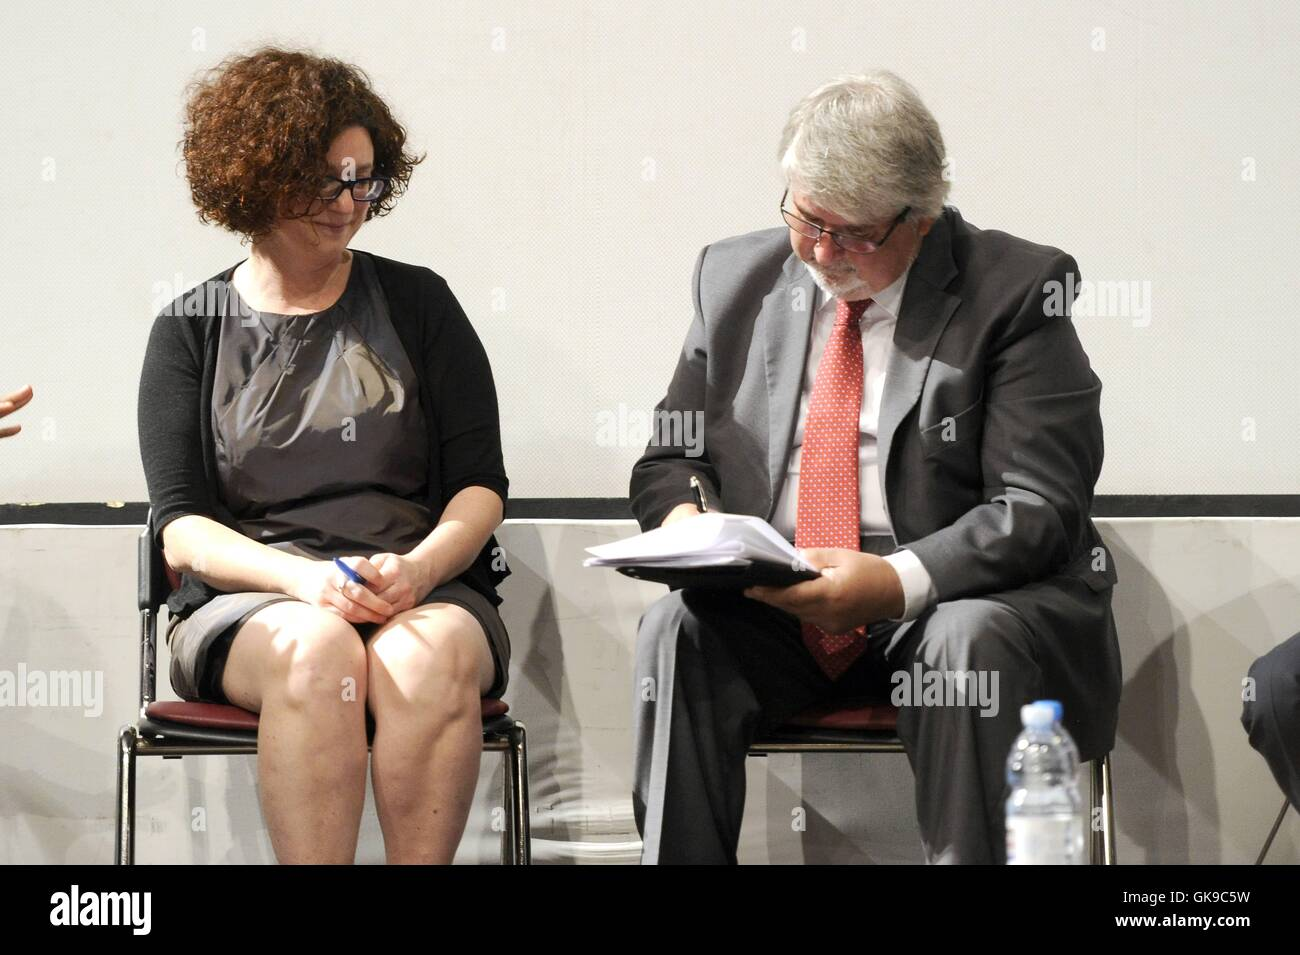 Richard Gere attends the signing of the MoU Ministry and PSD at the Taormina Congress Center during the 62nd Taormina - Stock Image